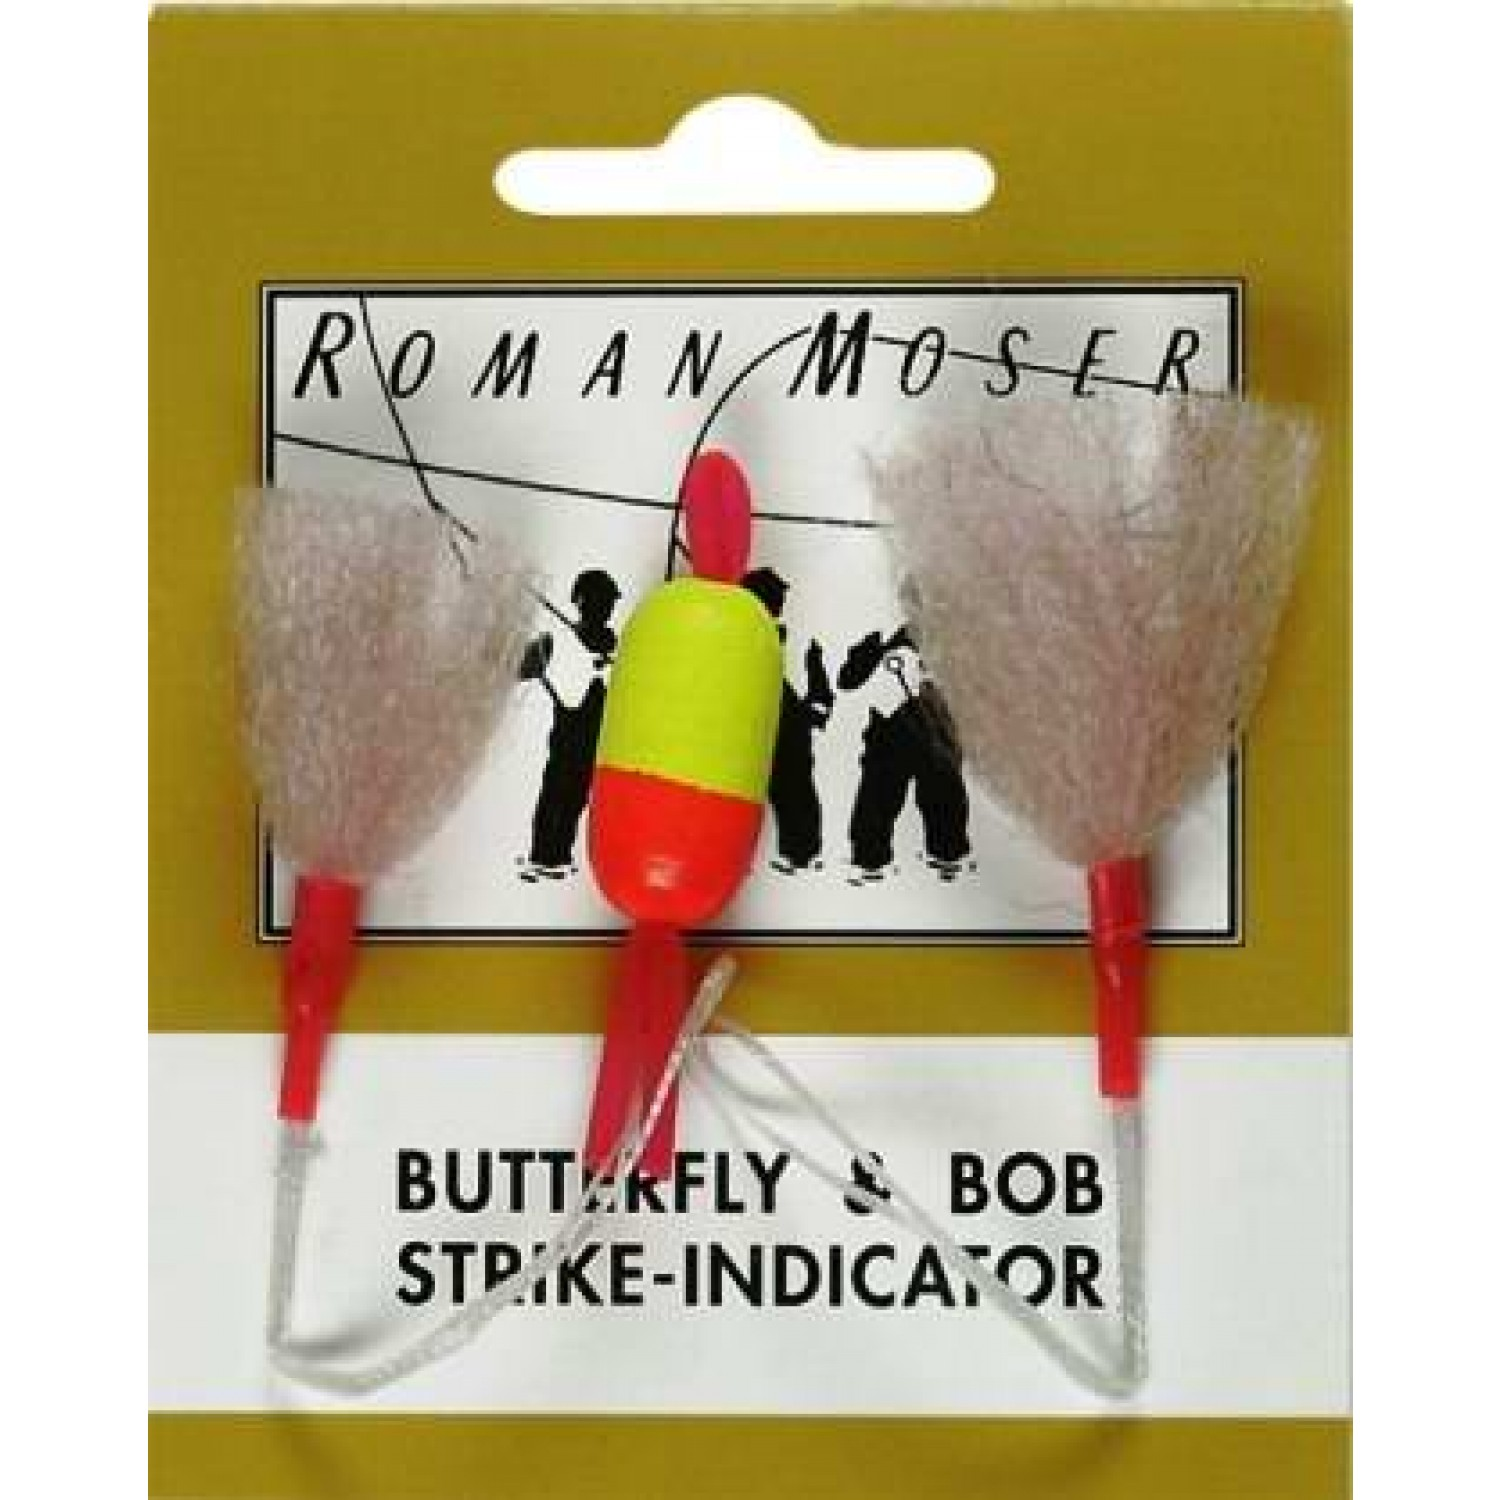 RM - Butterfly & Bob Strike Indicator